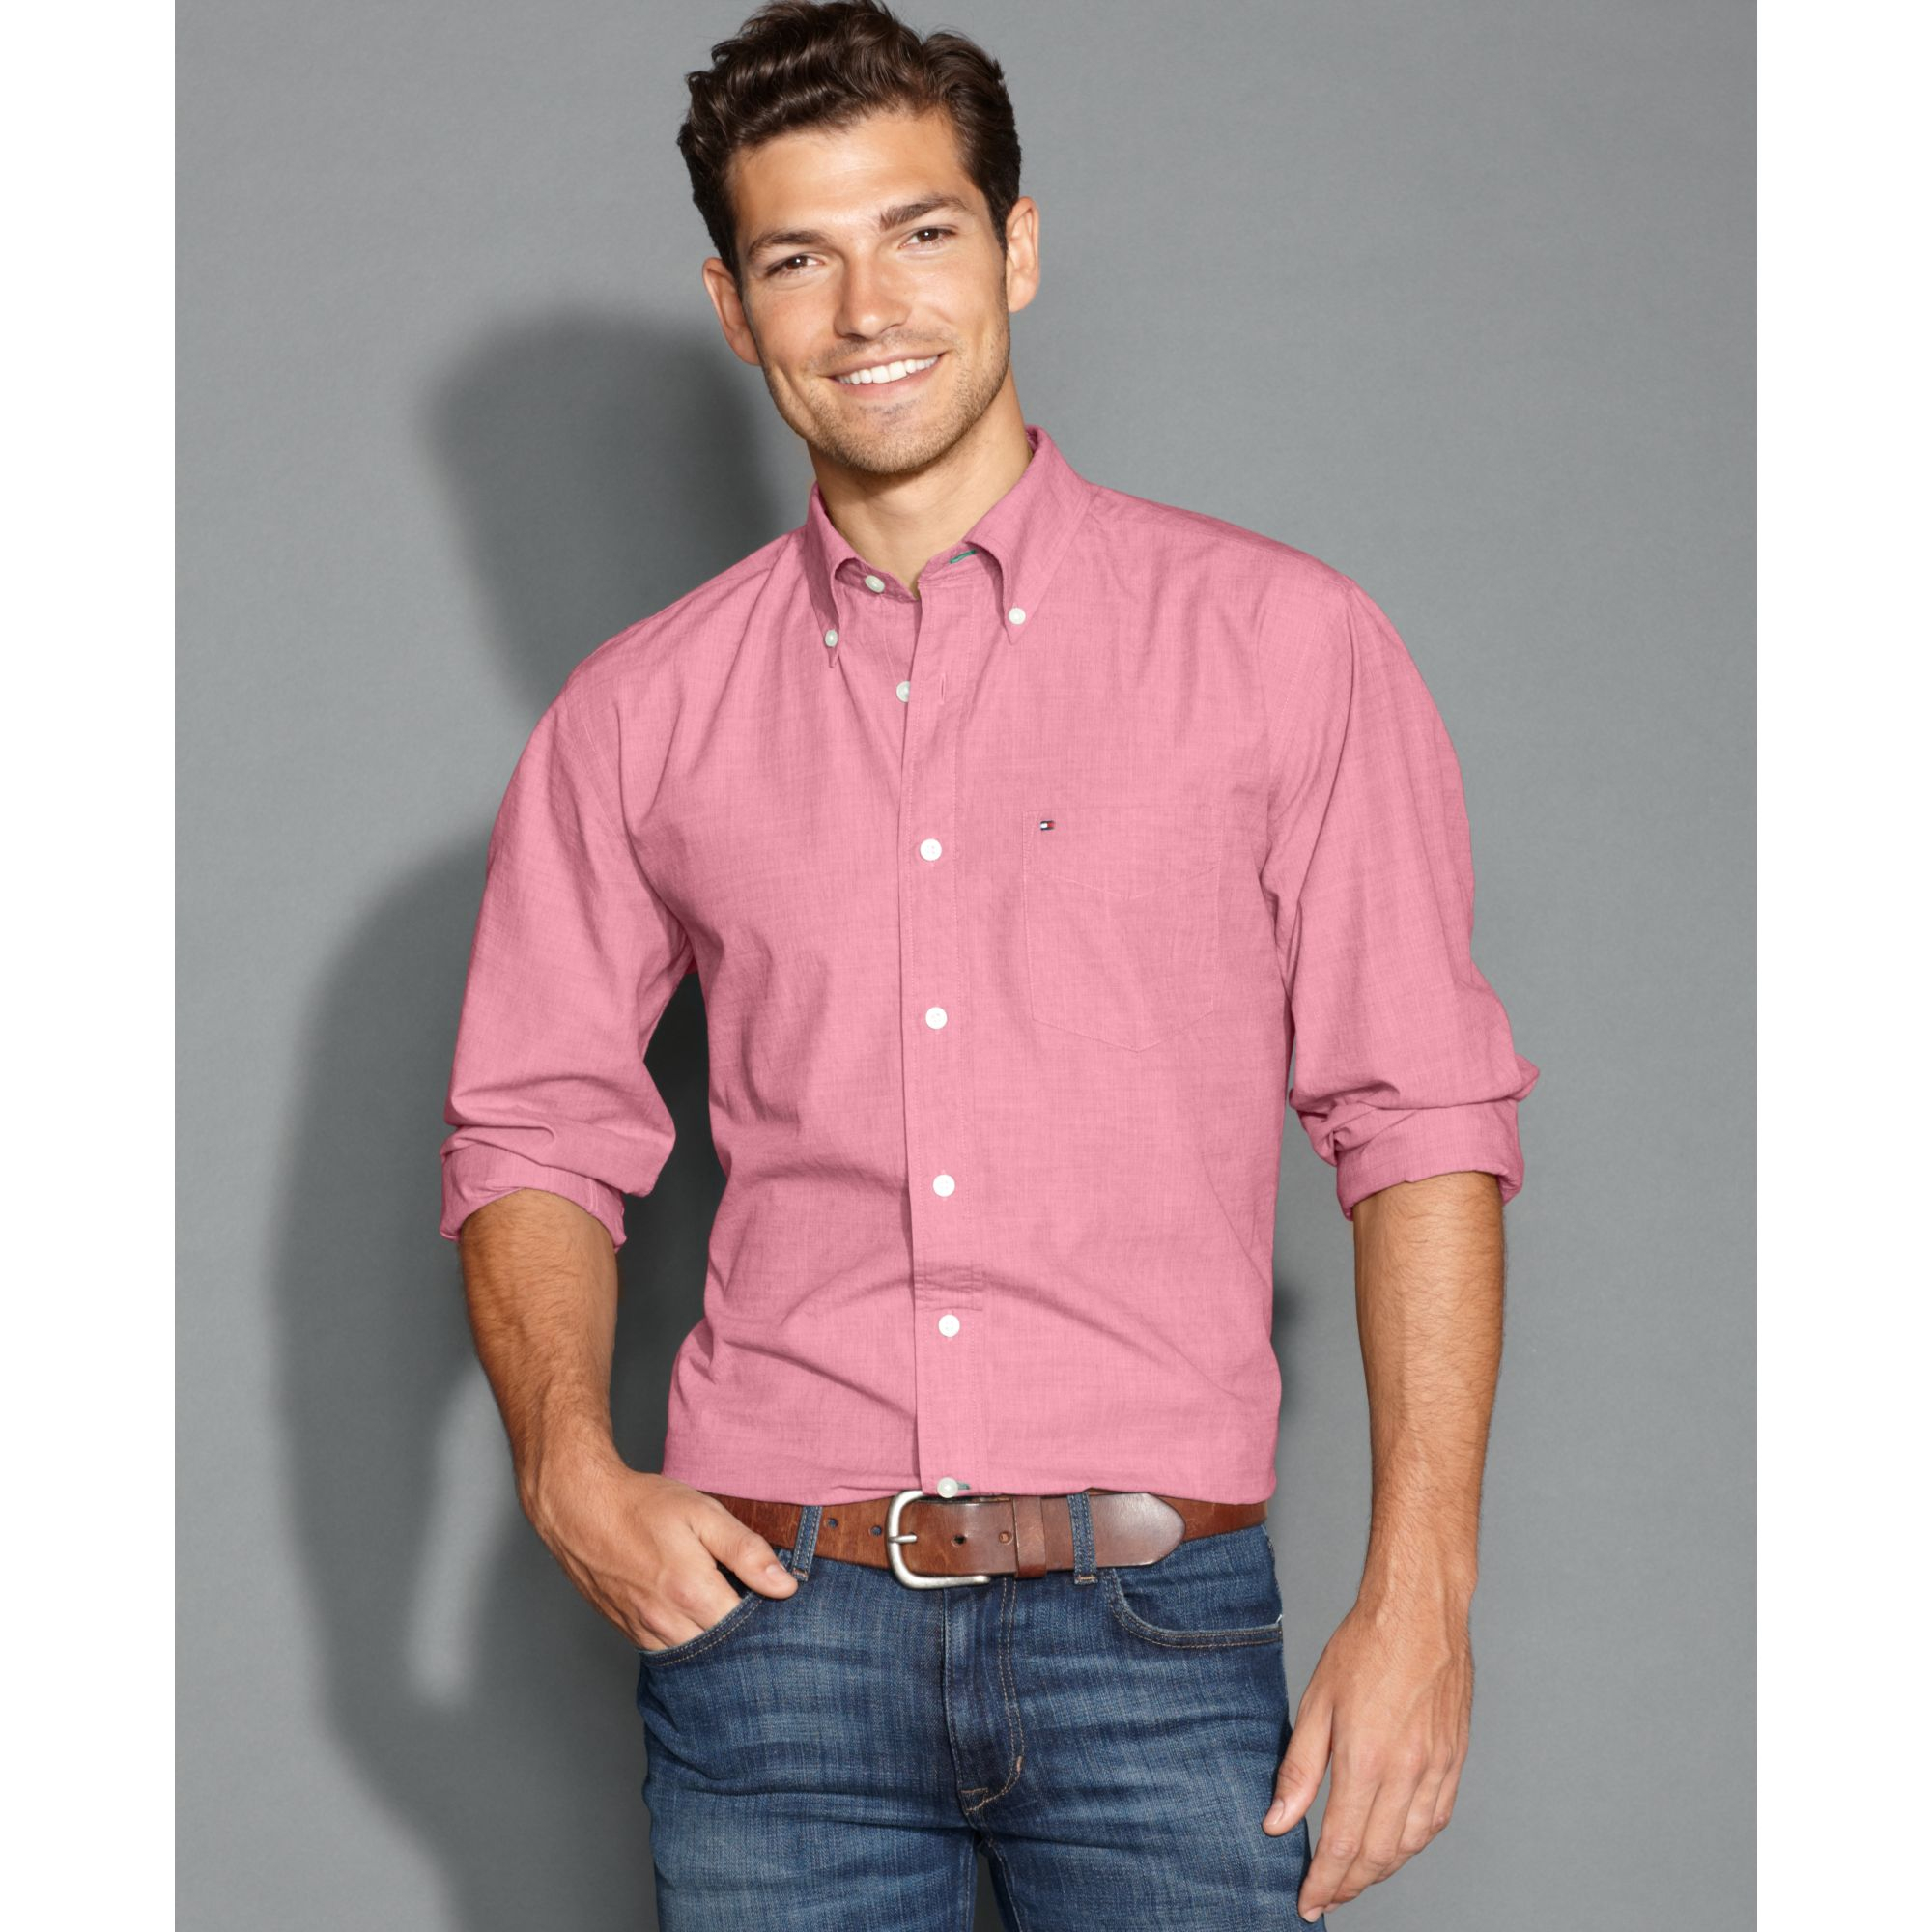 Mens Shirts Pink Custom Shirt